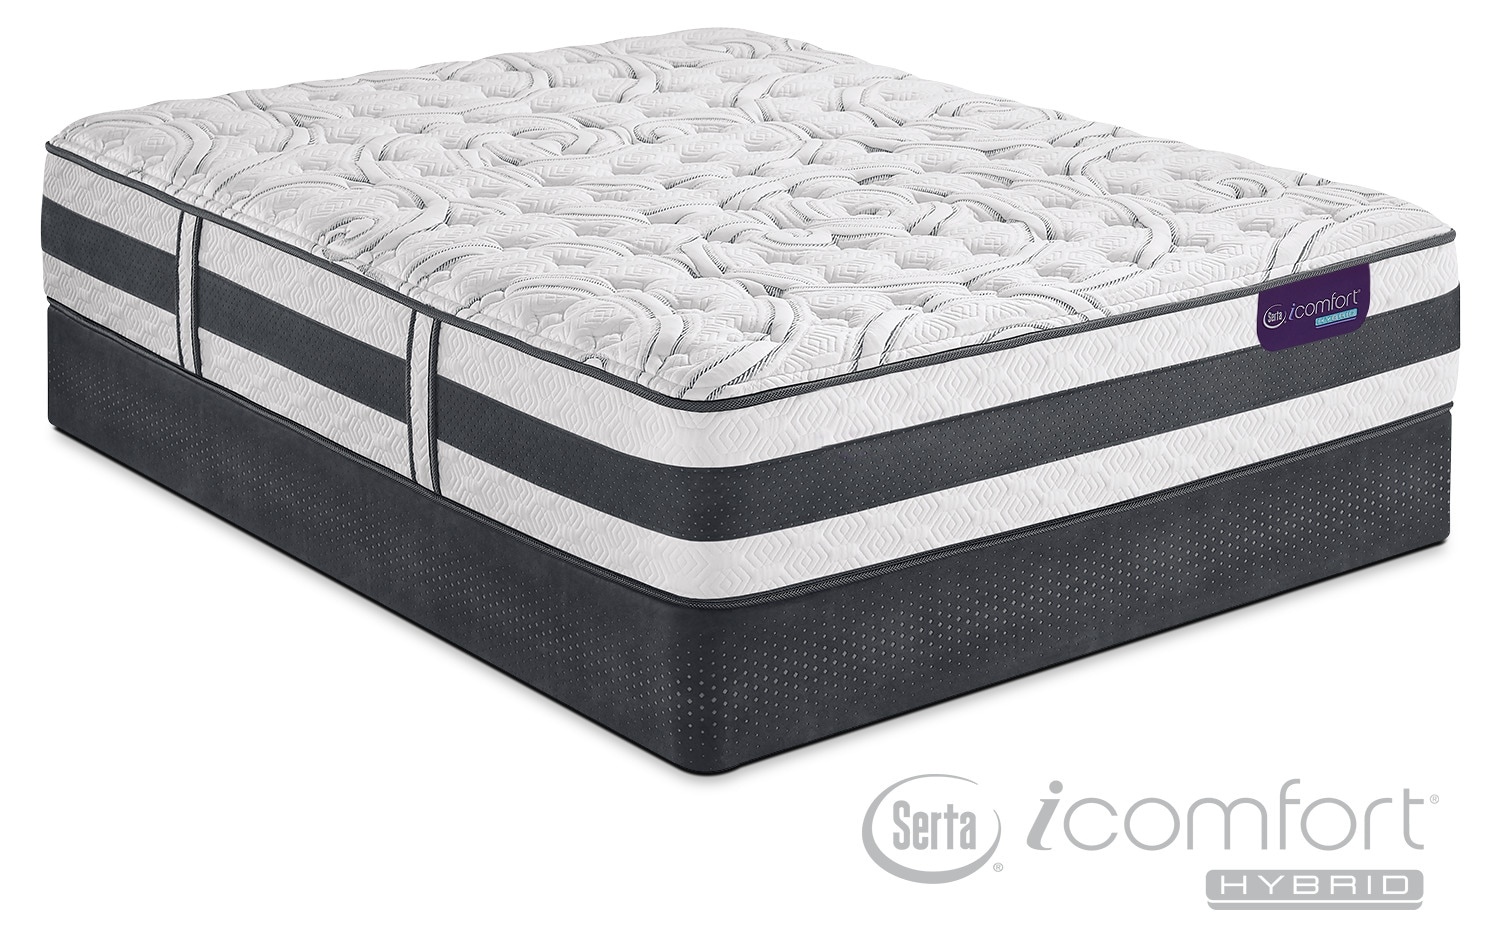 The Applause II Firm Mattress Collection